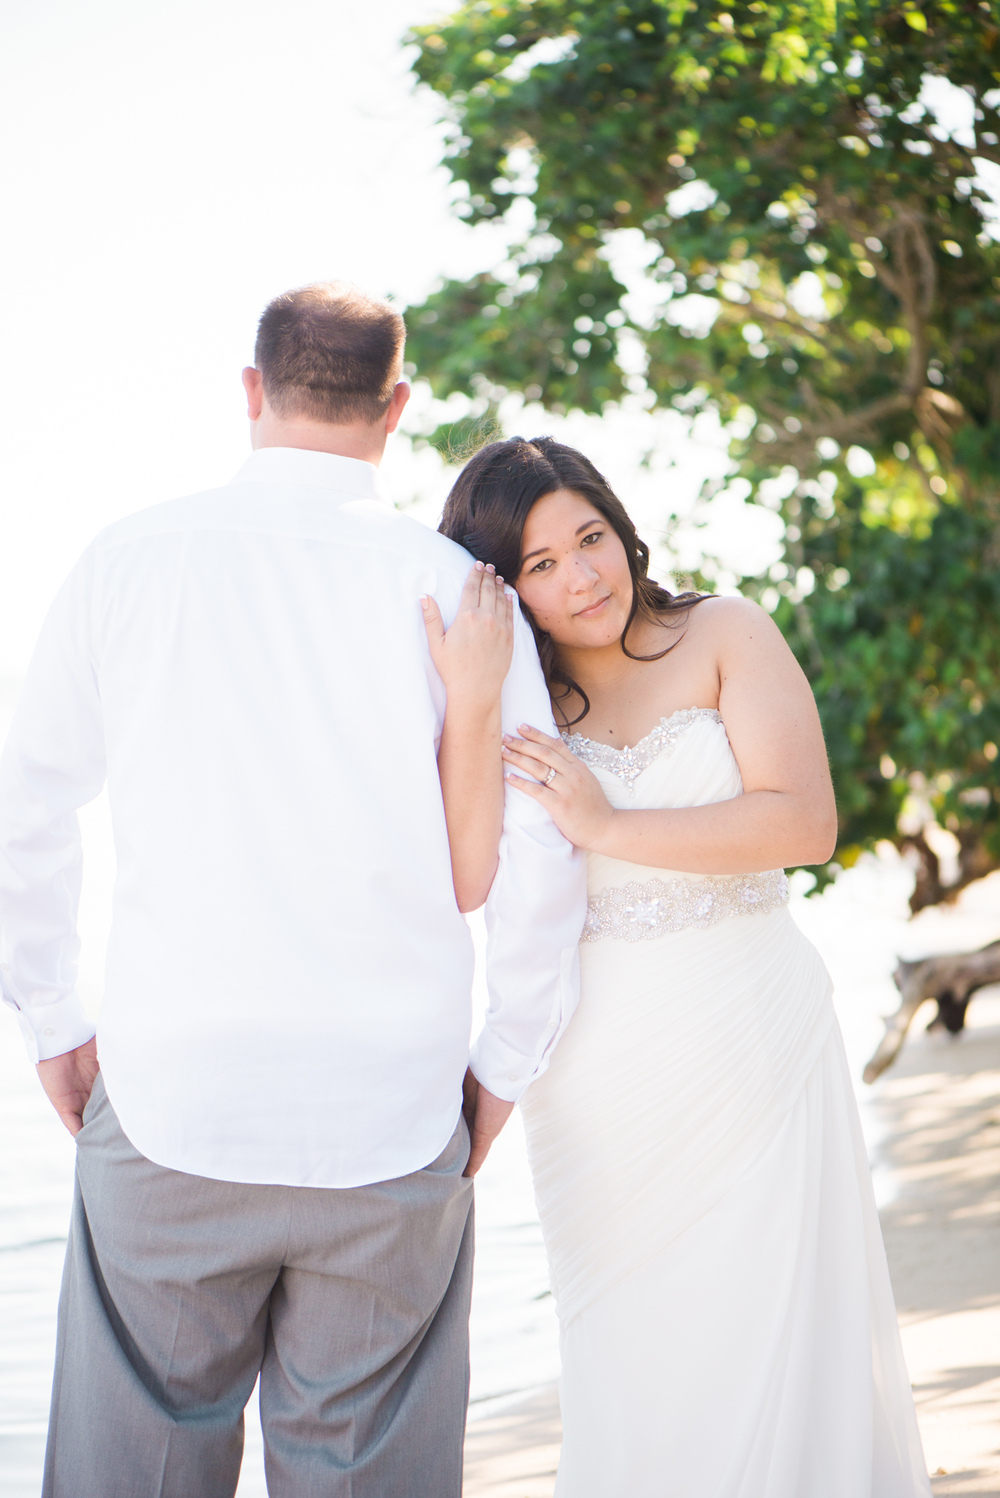 JadeandRyan-Montego-Bay-Jamaica-Wedding-Iberostar-Resort-Beach-93.jpg